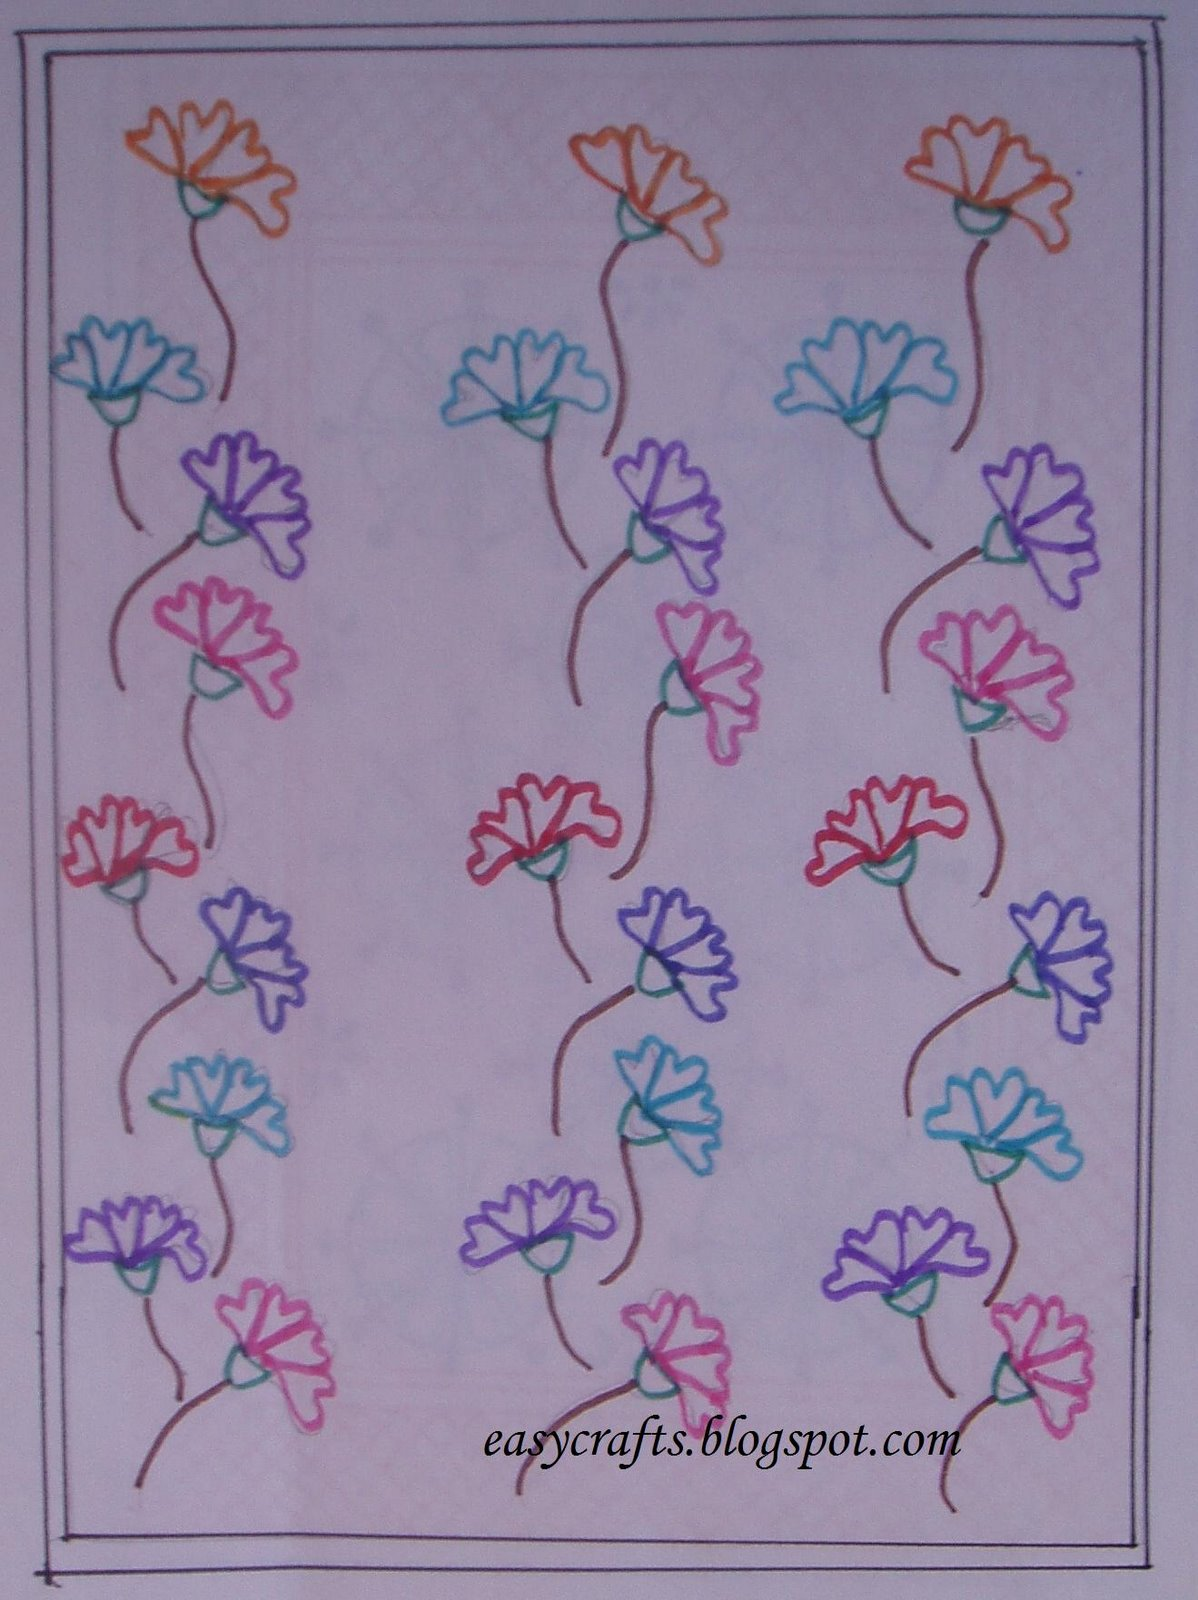 Easy crafts explore your creativity fabric painting designs for Fabric designs